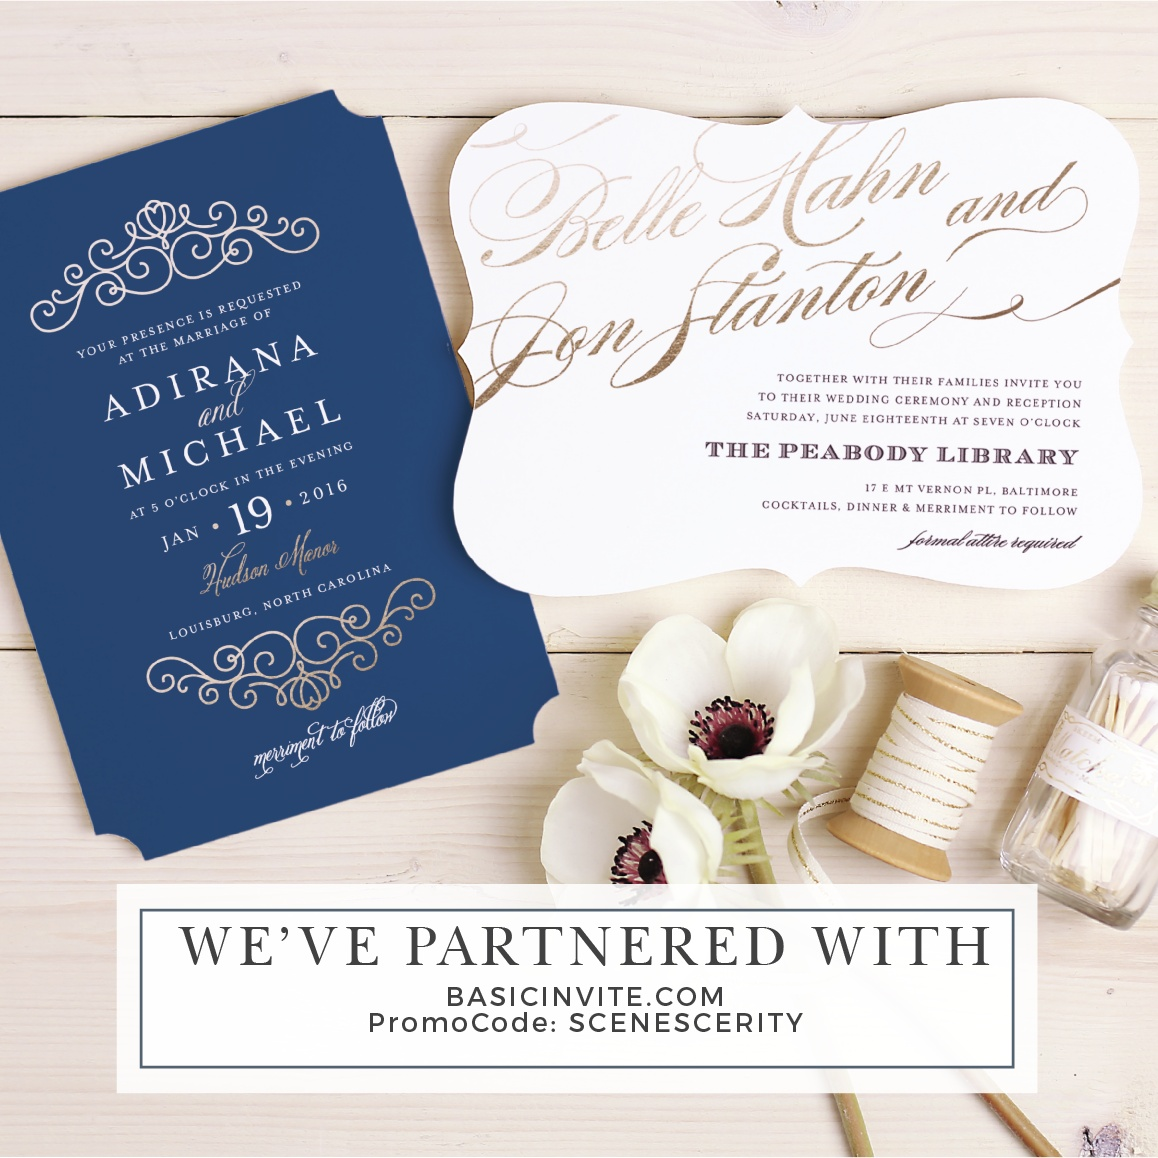 basic invite wedding save the date discount code.jpg